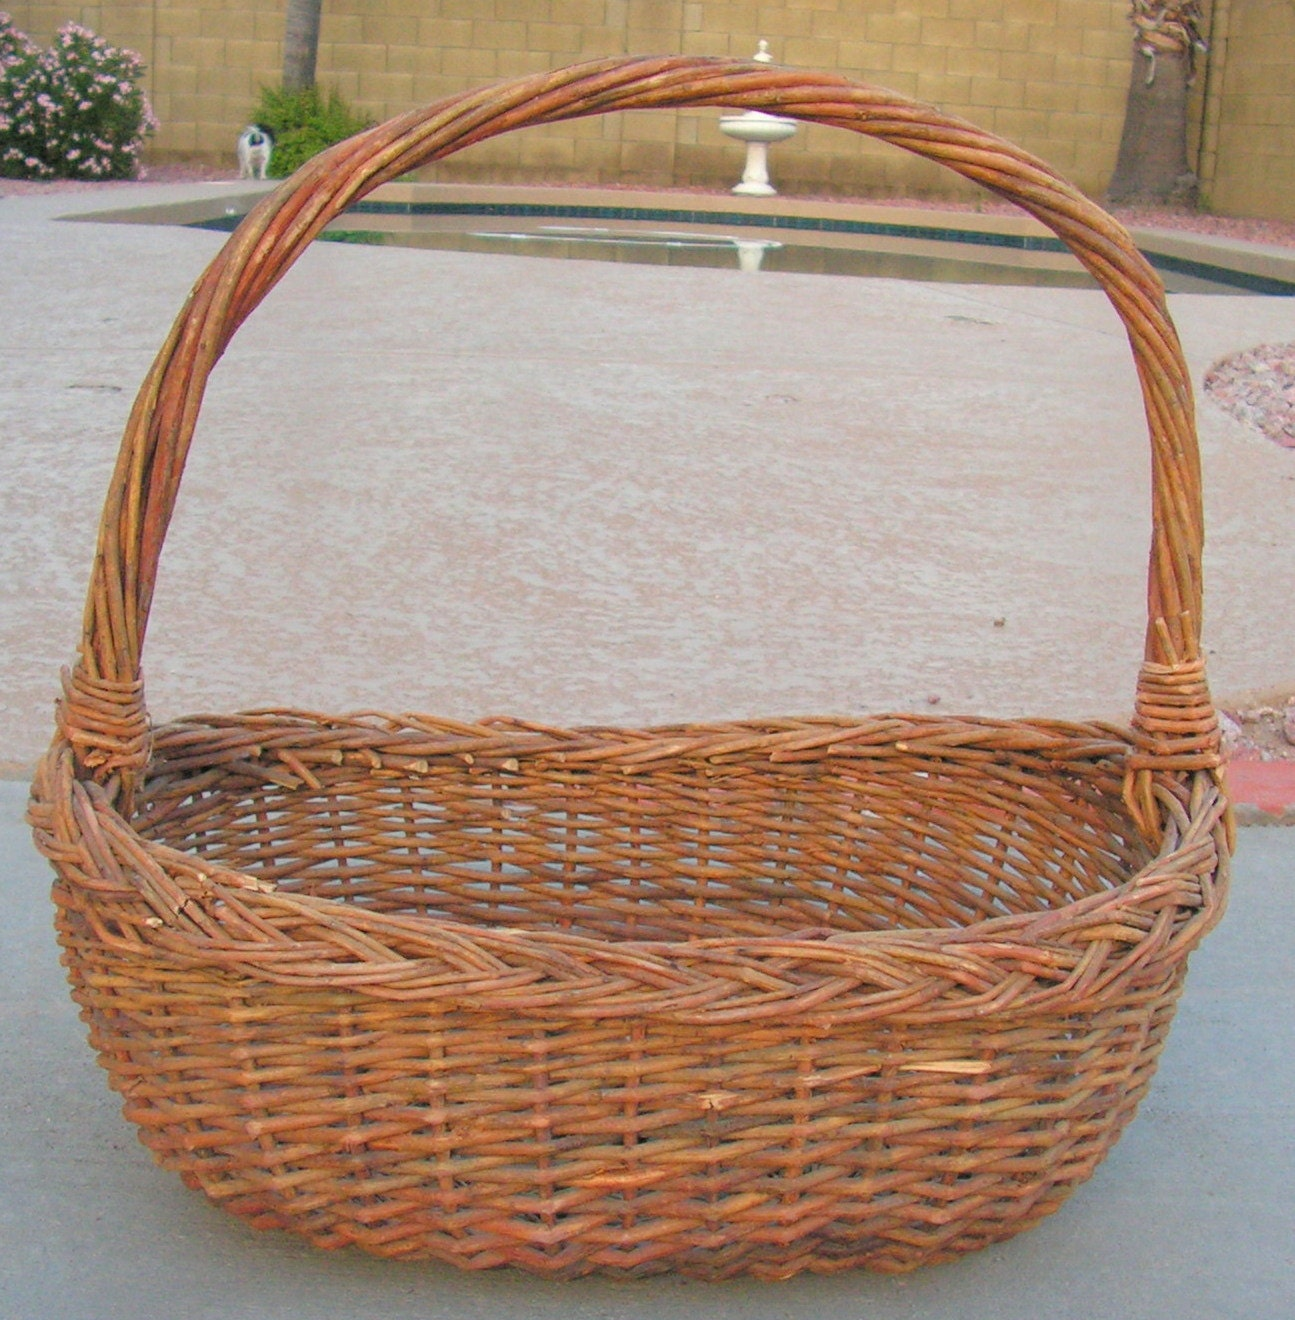 How To Weave A Basket Out Of Twigs : Vintage woven gathering basket twig with handle rustic